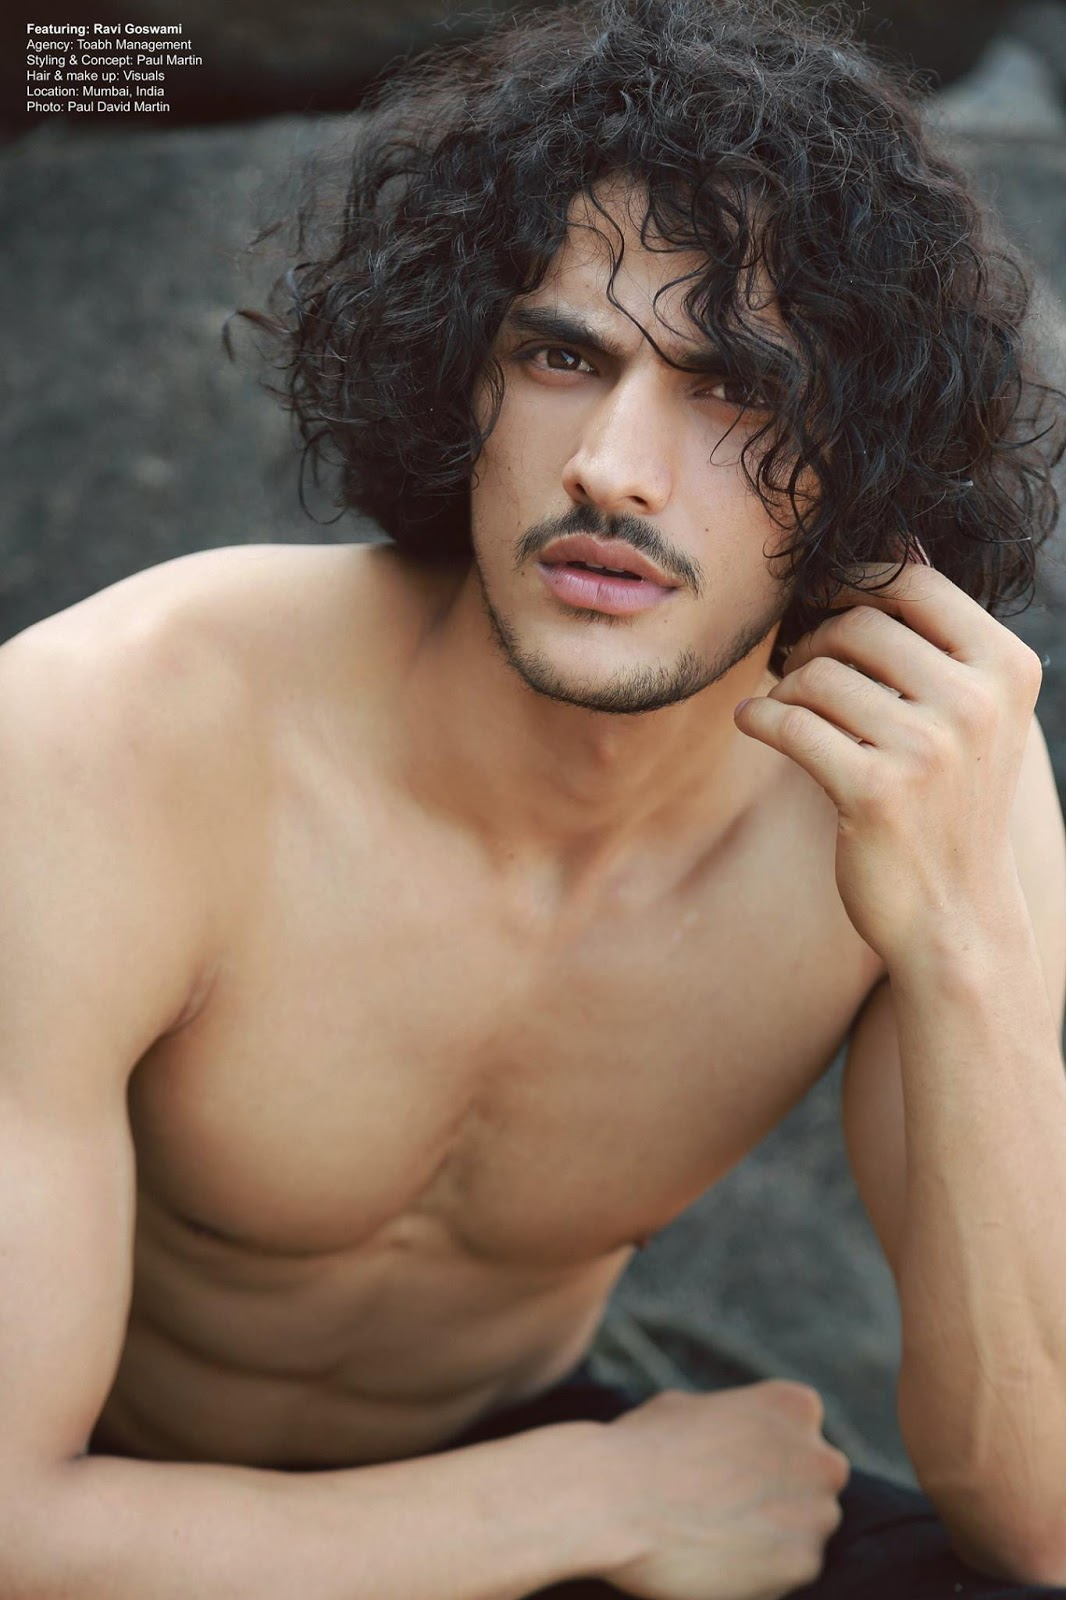 Shirtless Bollywood Men Indian Male Models And Their Pubes-9062